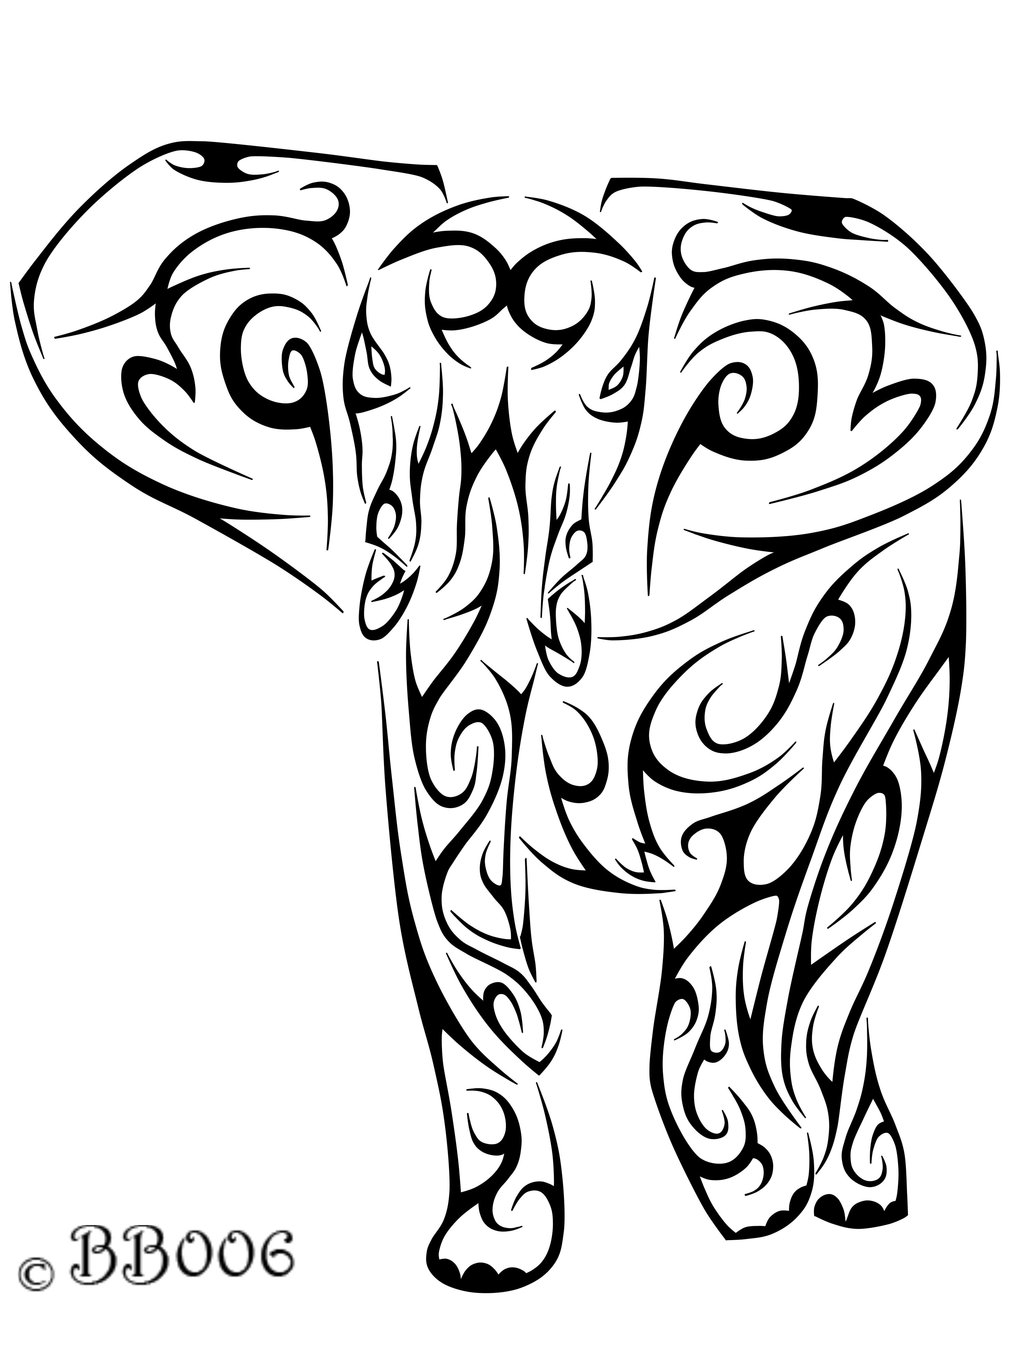 Black Ink Tribal Elephant Head Tattoo Design photo - 3